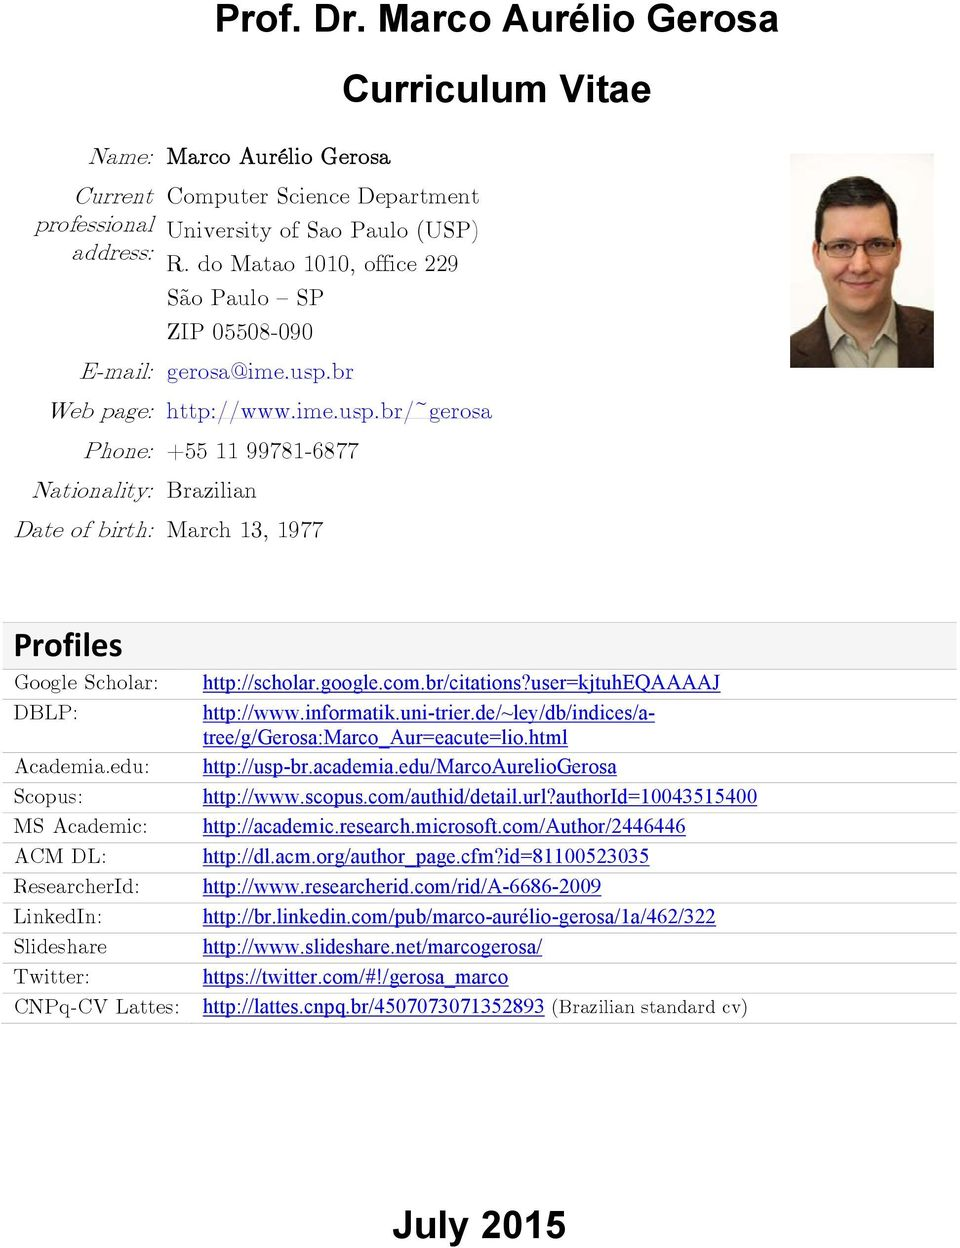 br Web page: http://www.ime.usp.br/~gerosa Phone: +55 11 99781-6877 Nationality: Brazilian Date of birth: March 13, 1977 Profiles Google Scholar: http://scholar.google.com.br/citations?